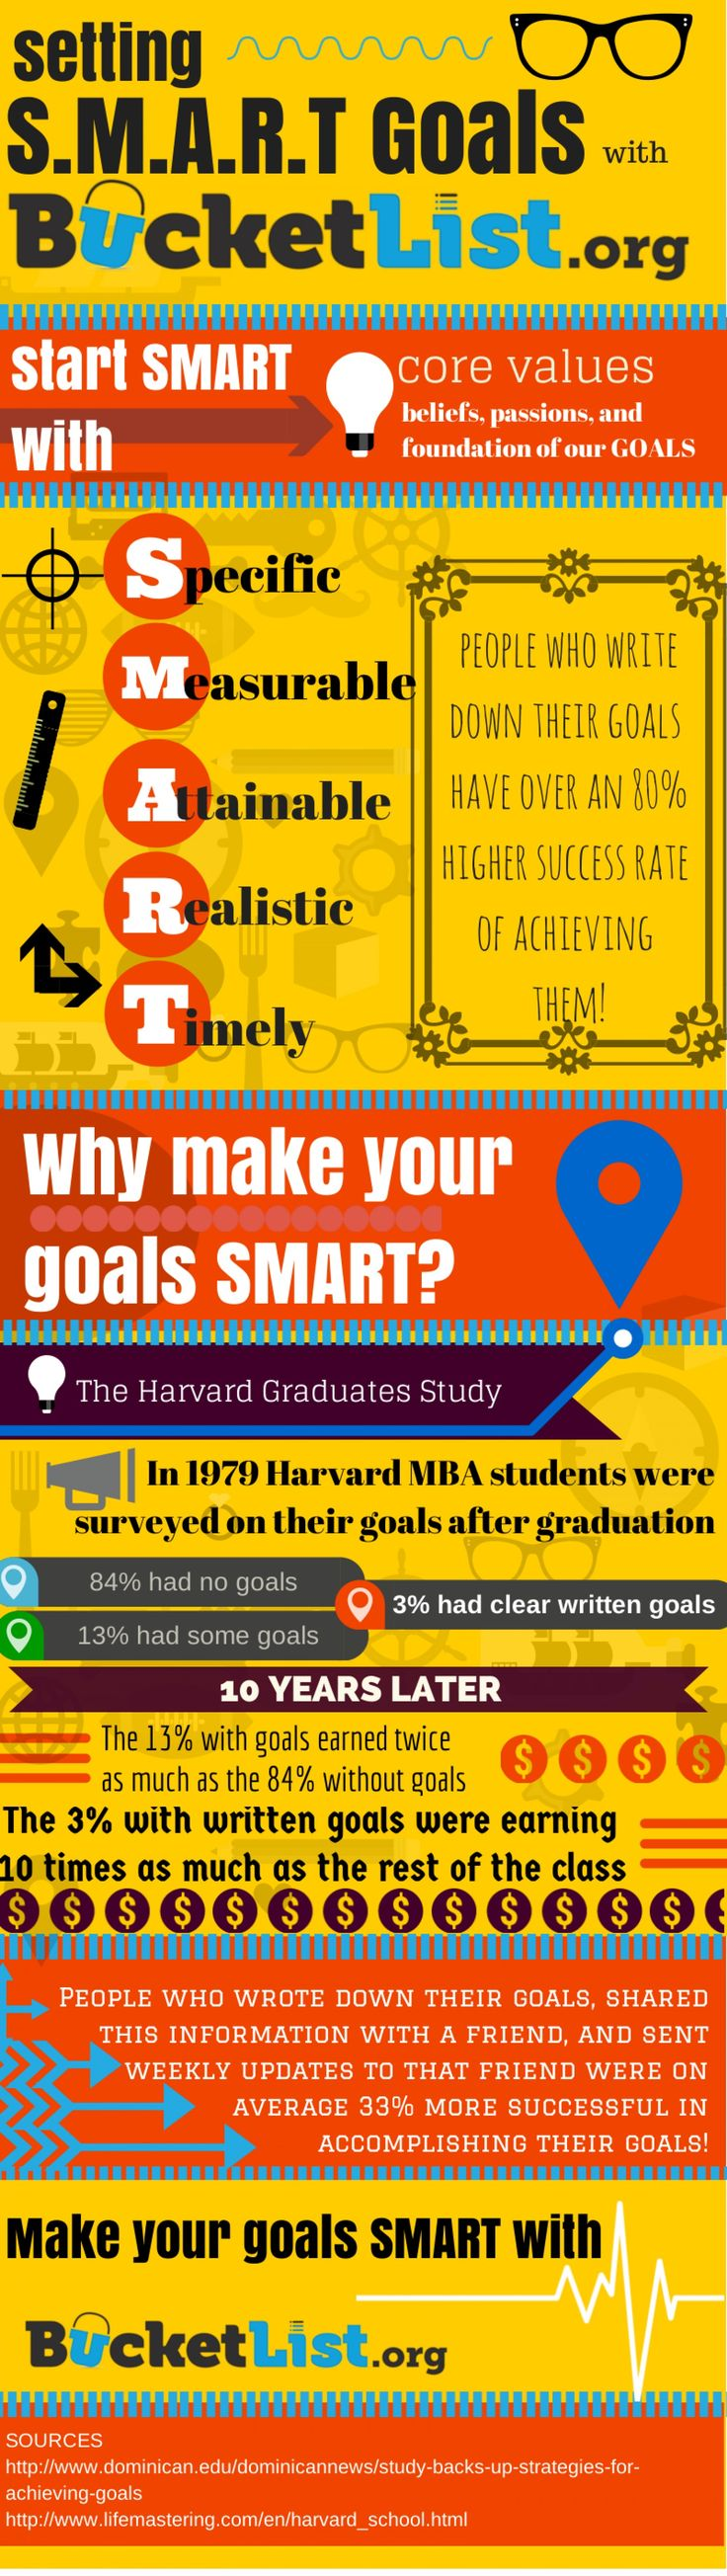 142 best college infographics images on pinterest colleges gym 142 best college infographics images on pinterest colleges gym and info graphics fandeluxe Gallery